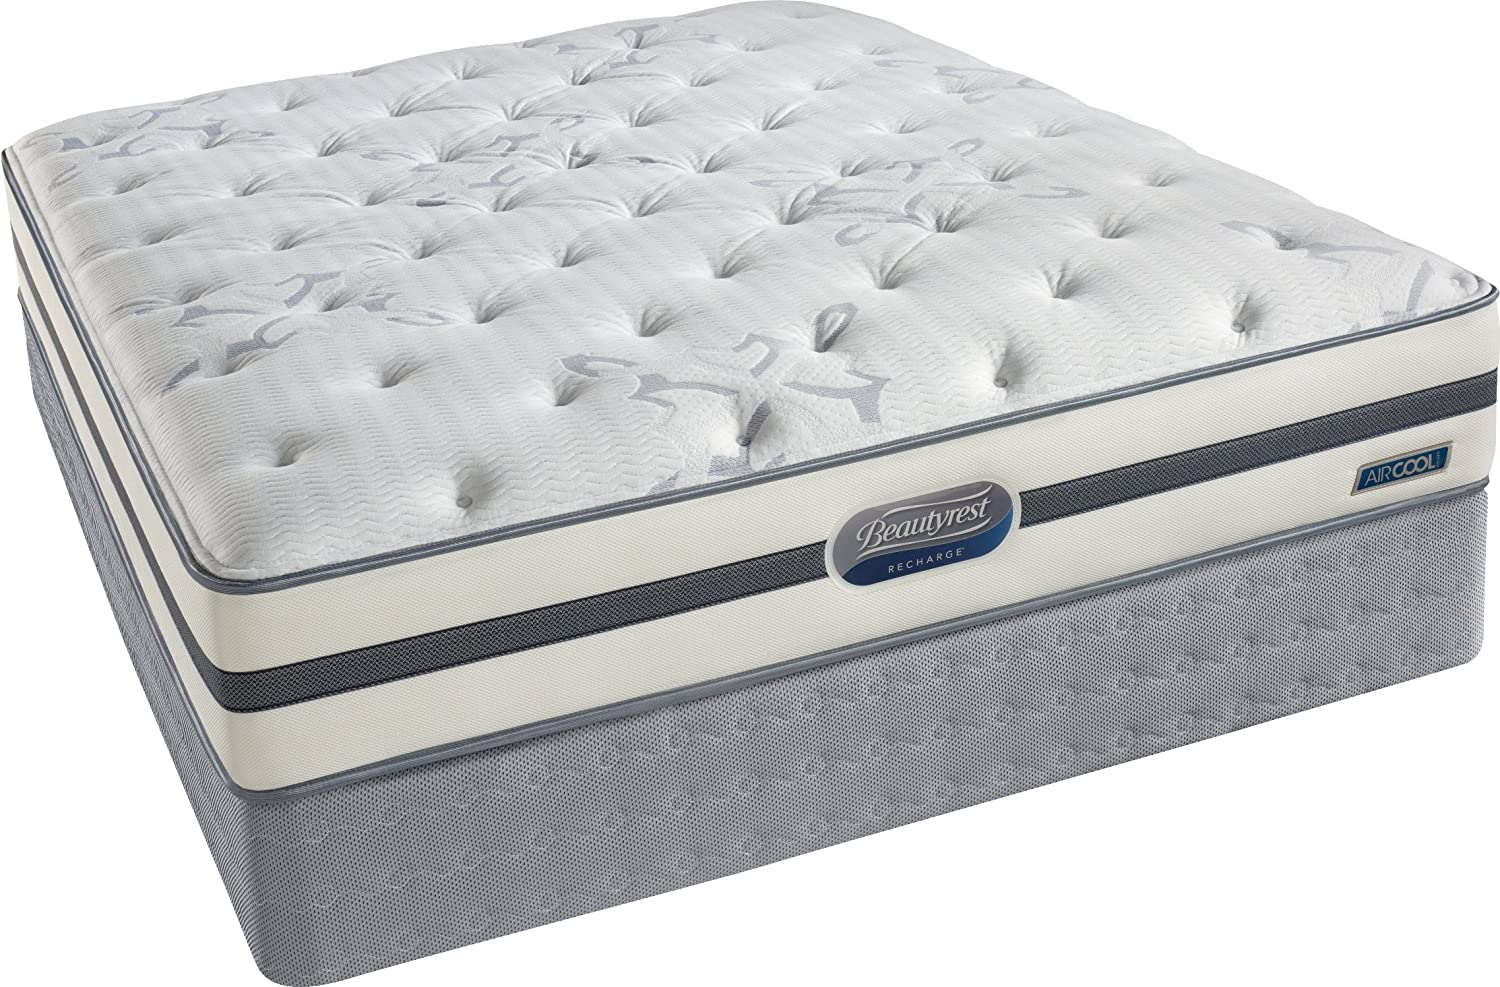 Beautyrest Recharge Luxury Pillow Top Mattress